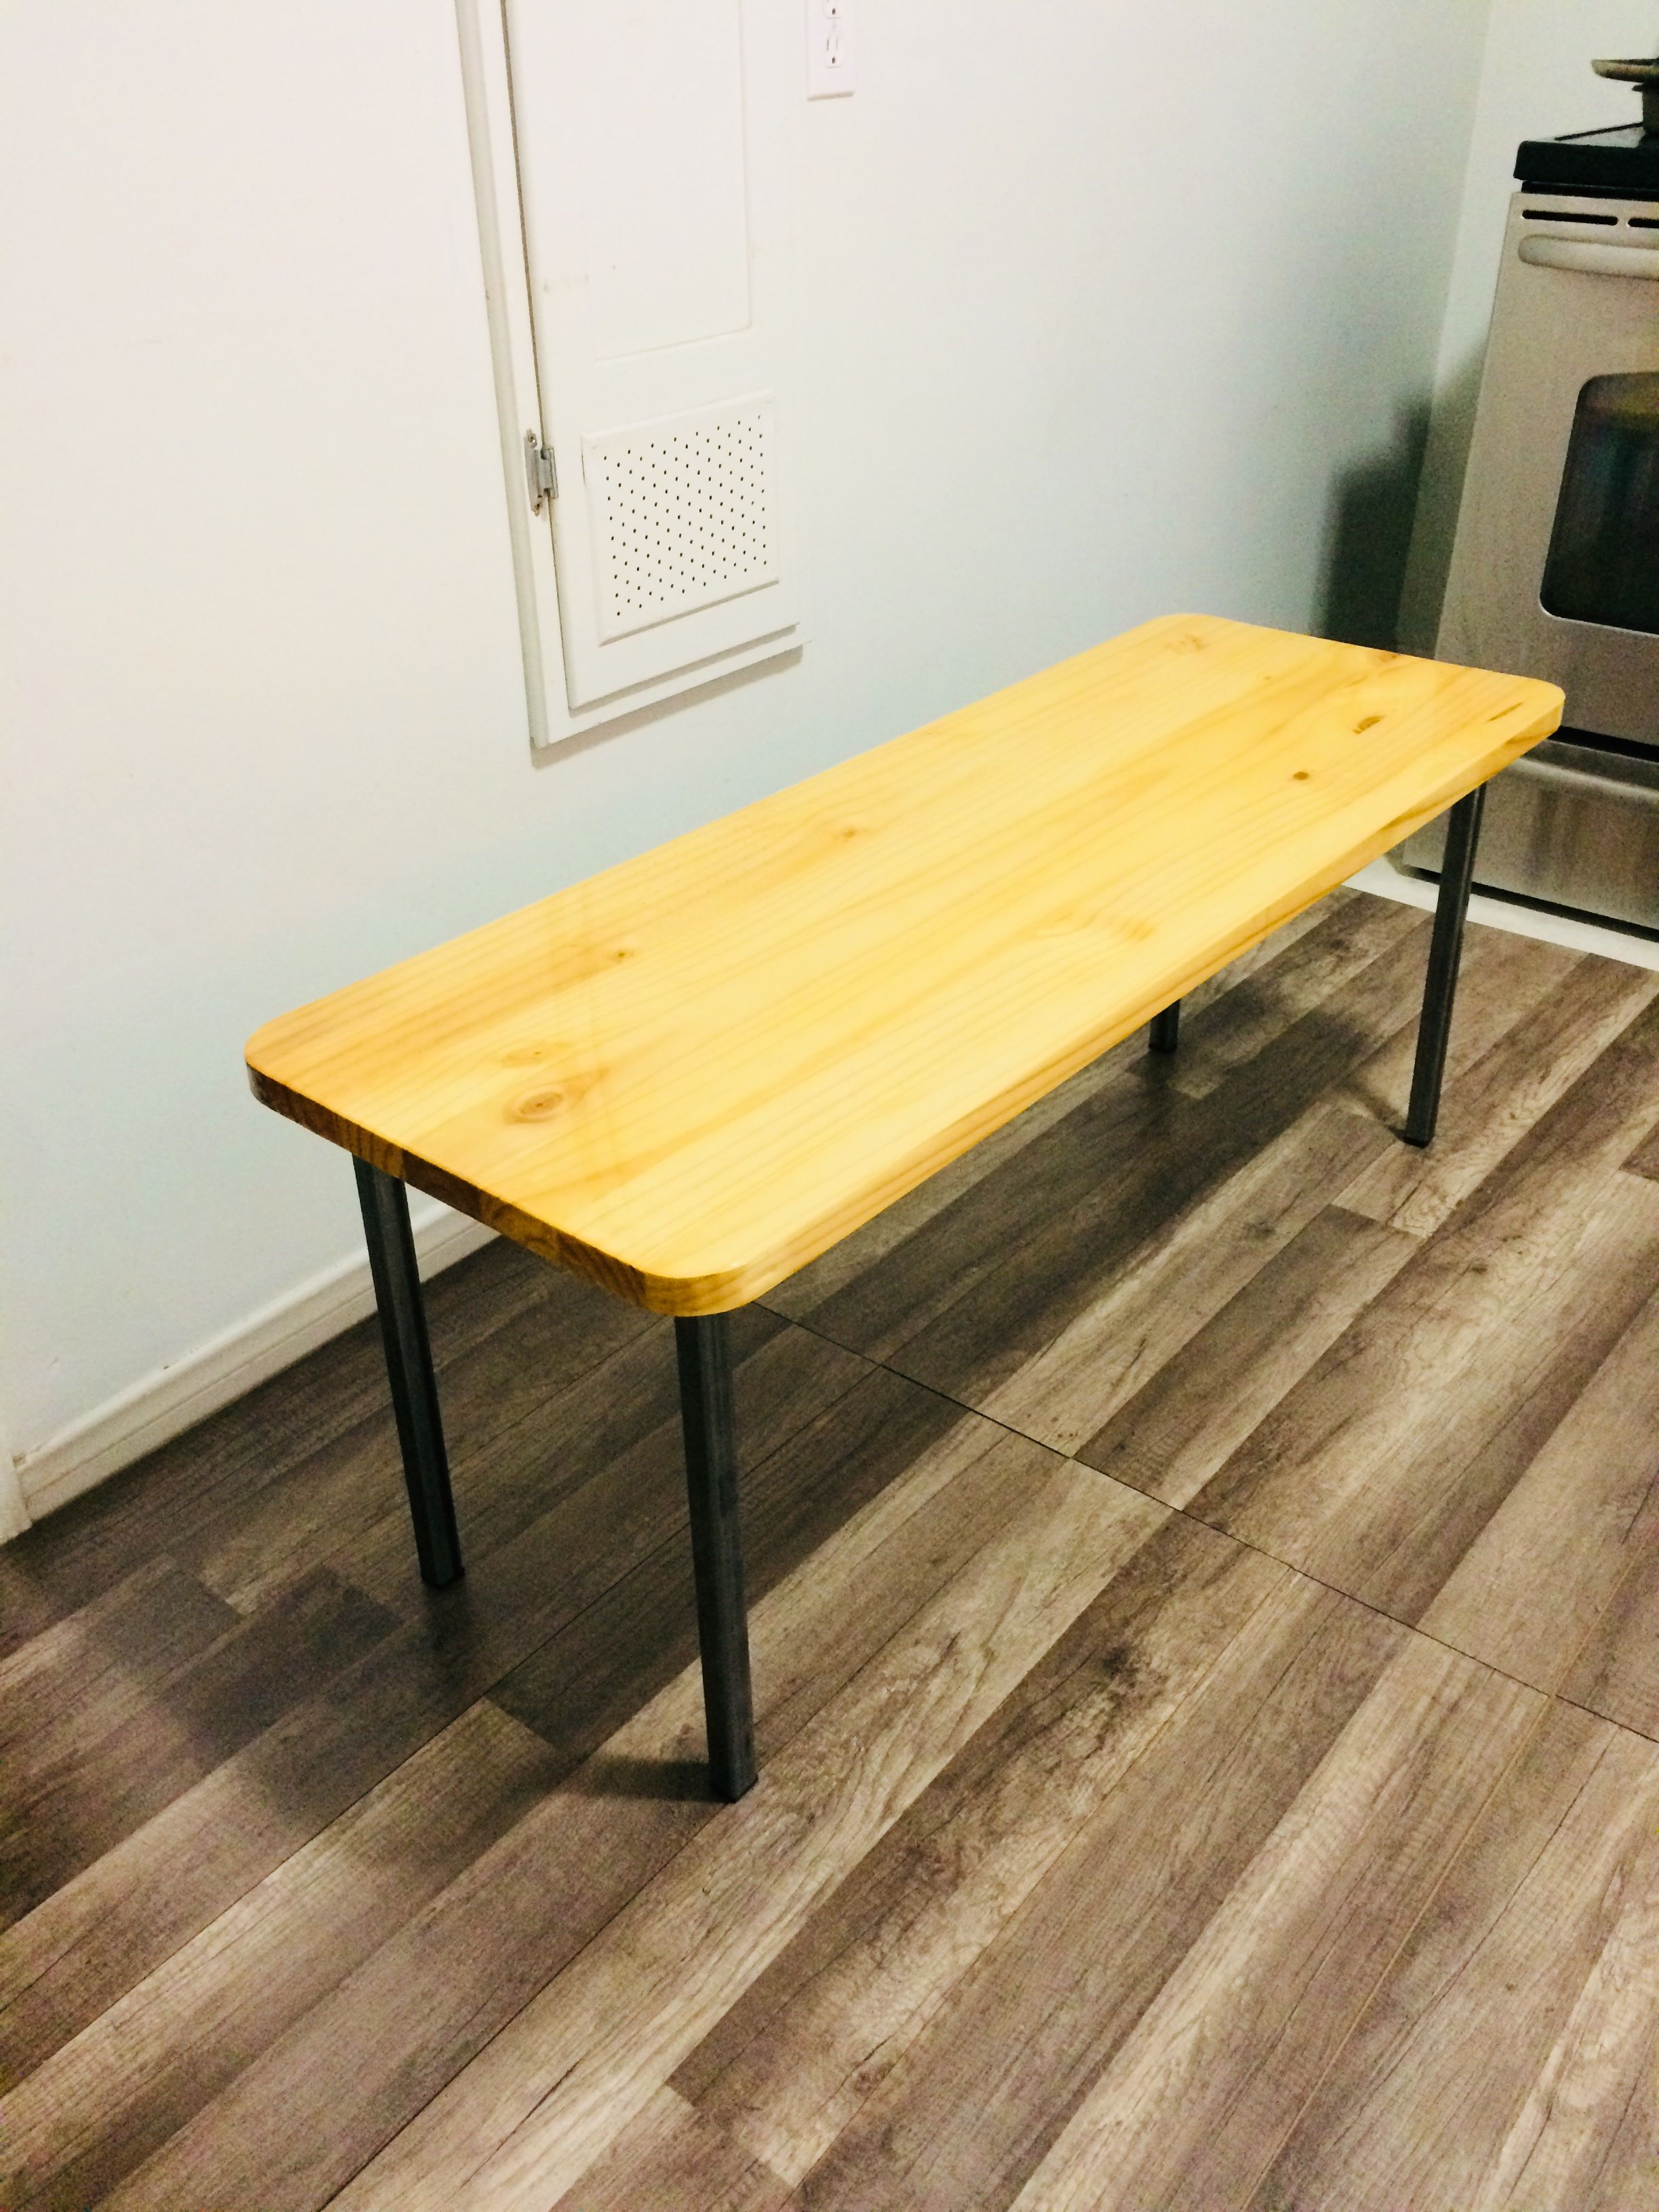 Epoxy Resin Pine Table With Steel Legs Industrial Chic Reddogscrafts On Etsy Pine Table Coffee Table Industrial Furniture